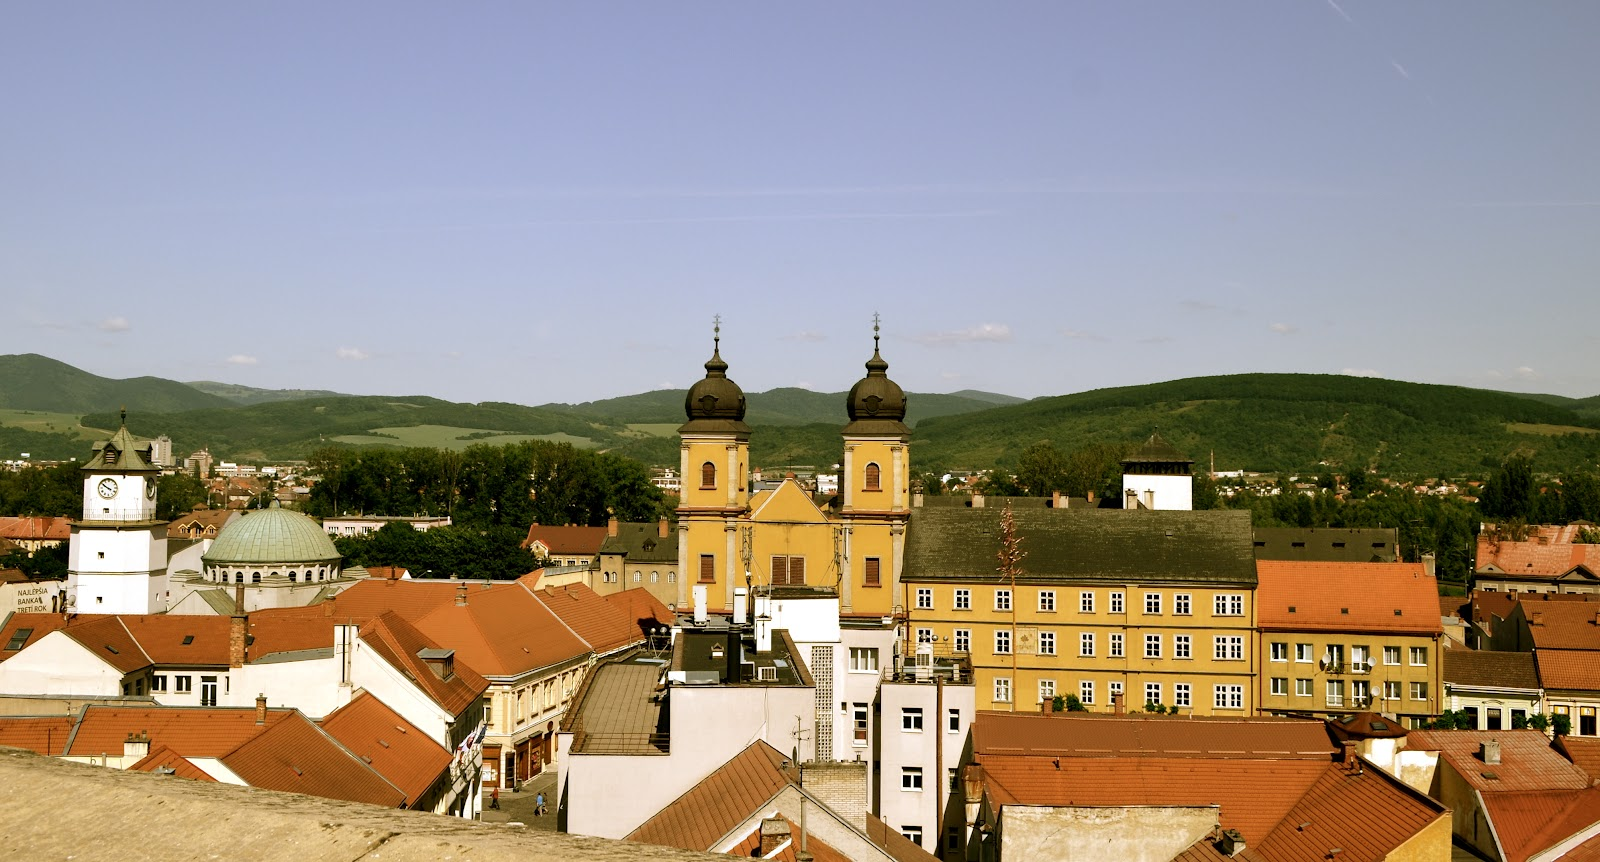 Trencin Slovakia  City new picture : The Darling Starlings: Trencin & Bojnice, Slovakia